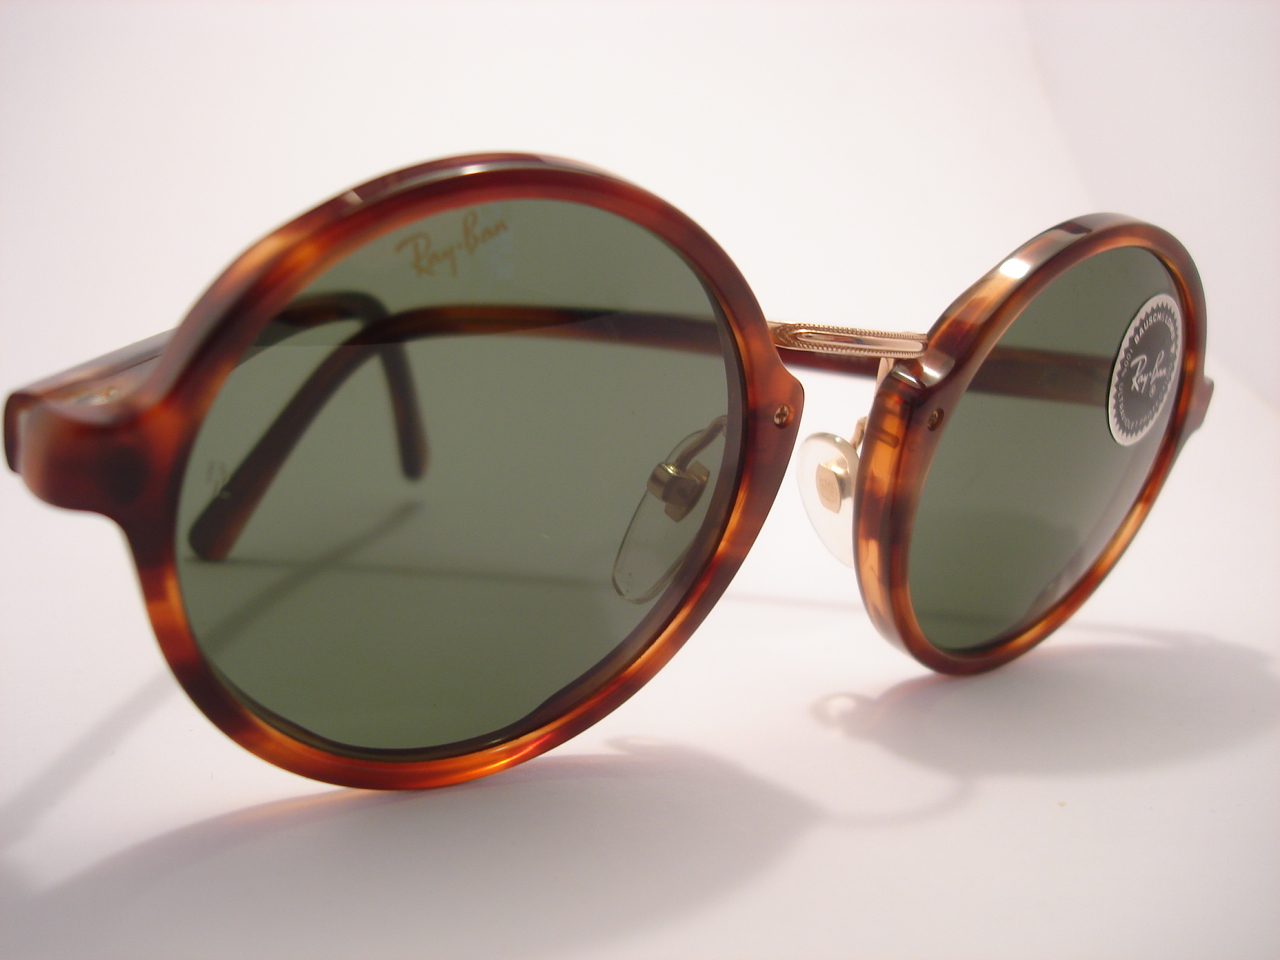 theothersideofthepillow: vintage RAY BAN by BAUSCH & LOMB ...